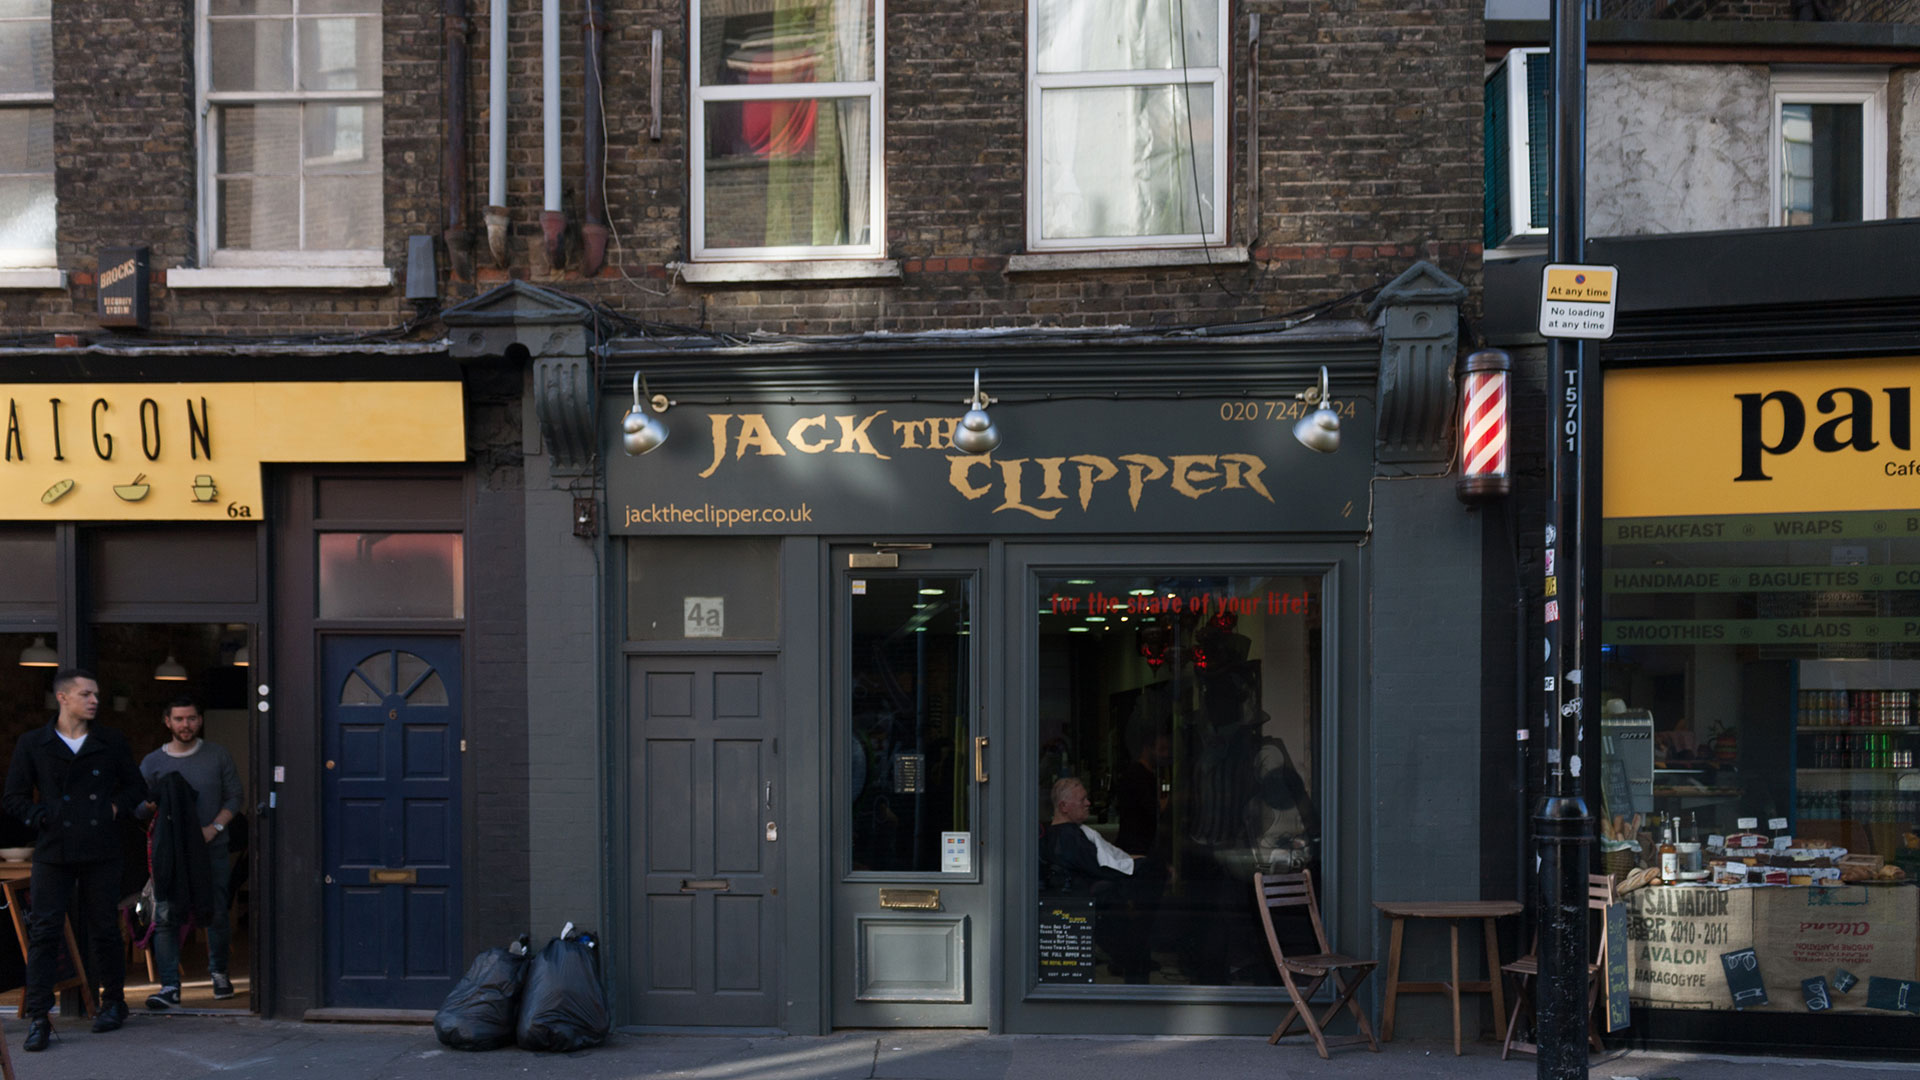 The facade of Jack the Clipper, a barbershop in Whitechapel, London